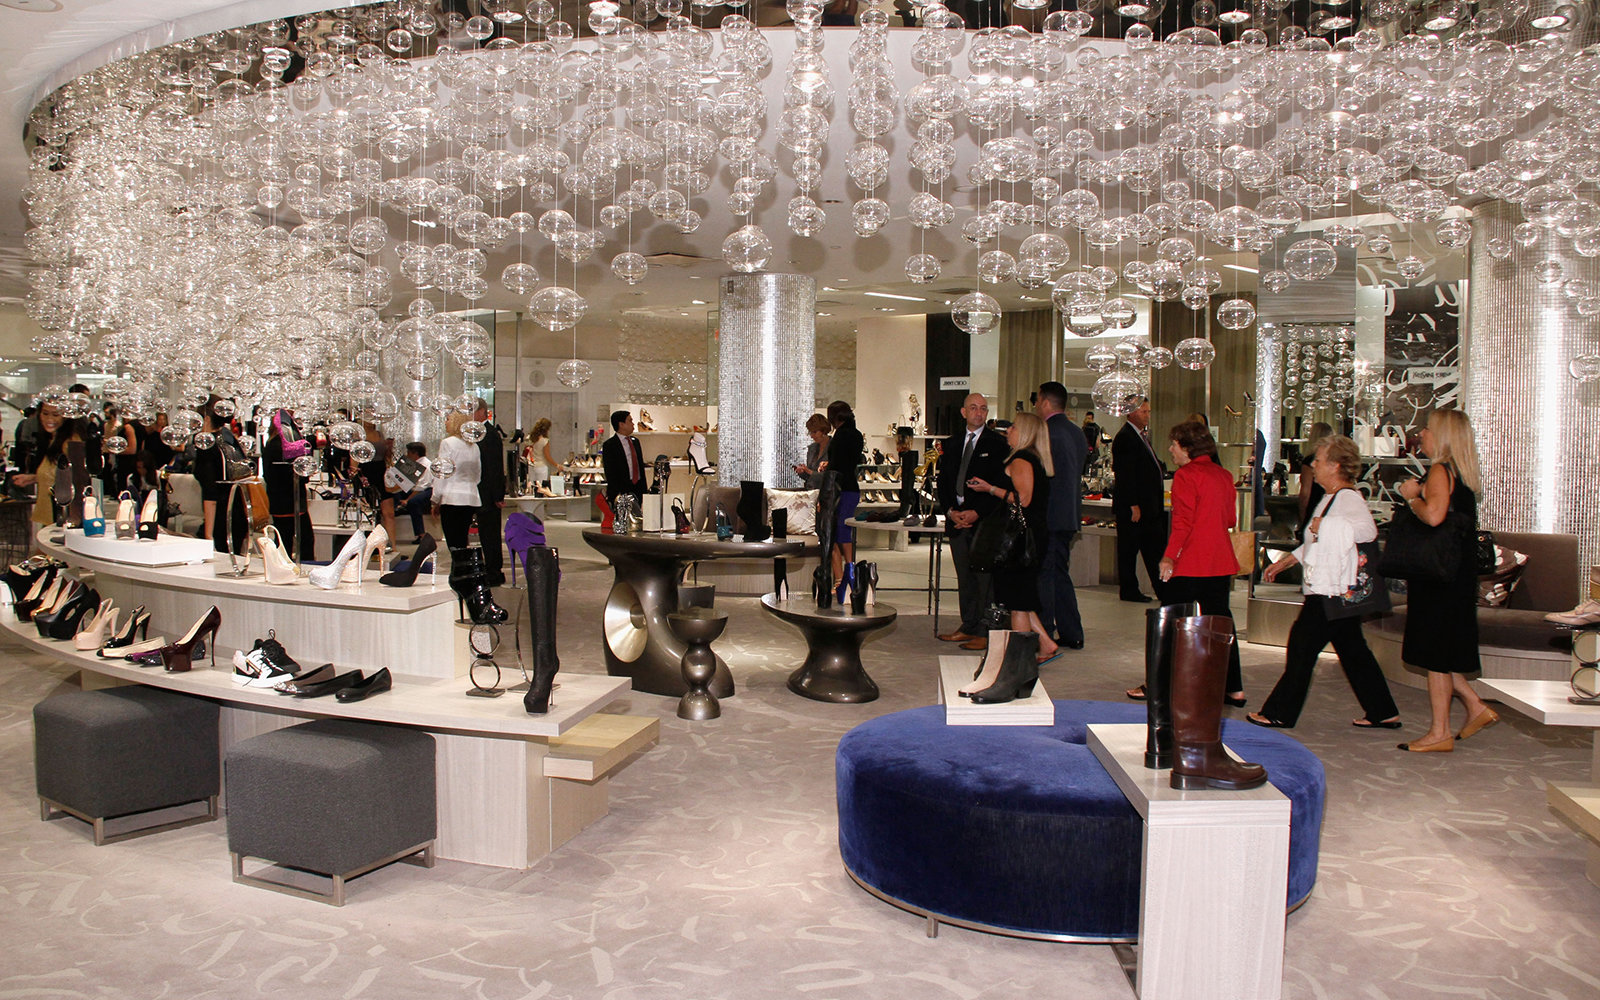 NEW YORK, NY - SEPTEMBER 06:  A general view of atmosphere at Fashion's Night Out at Saks Fifth Avenue on September 6, 2012 in New York City.  (Photo by Janette Pellegrini/Getty Images for Saks Fifth Avenue)